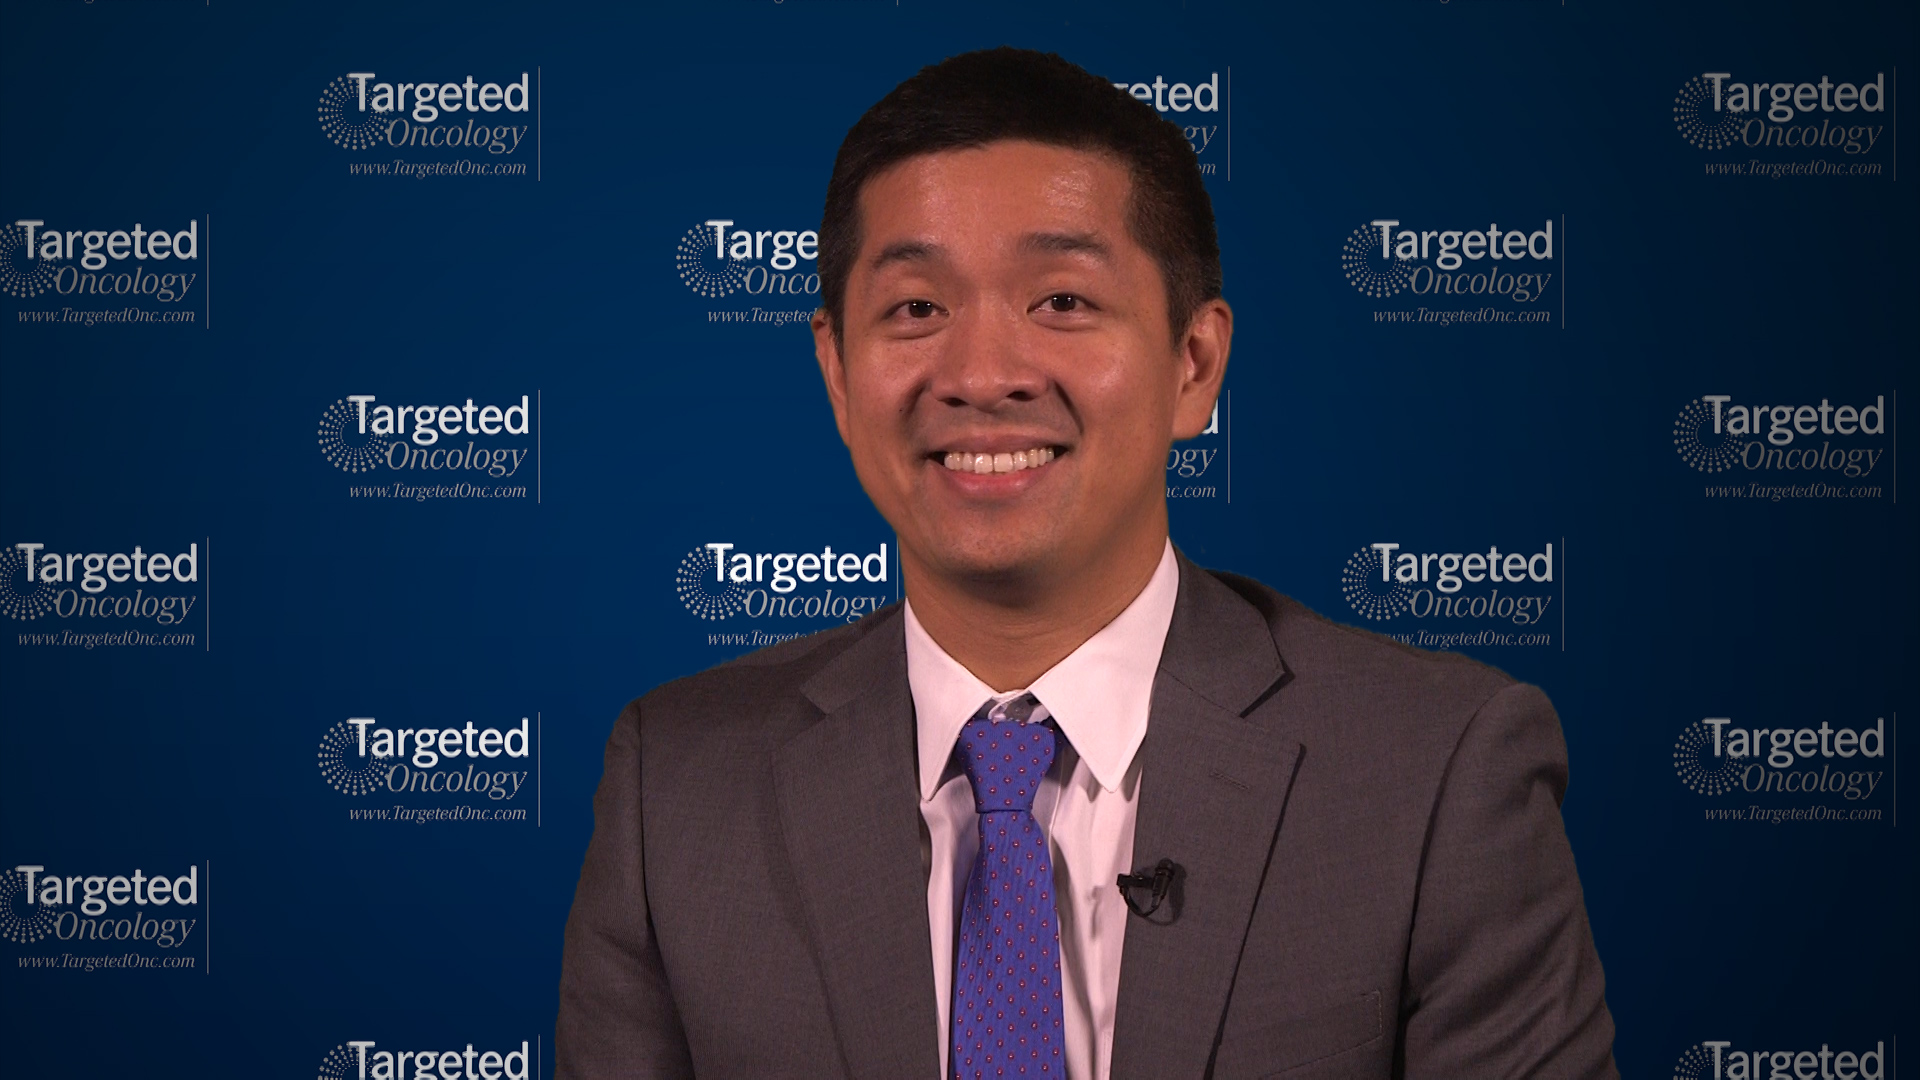 Use of Bevacizumab in Stage IV NSCLC With No Actionable Mutations